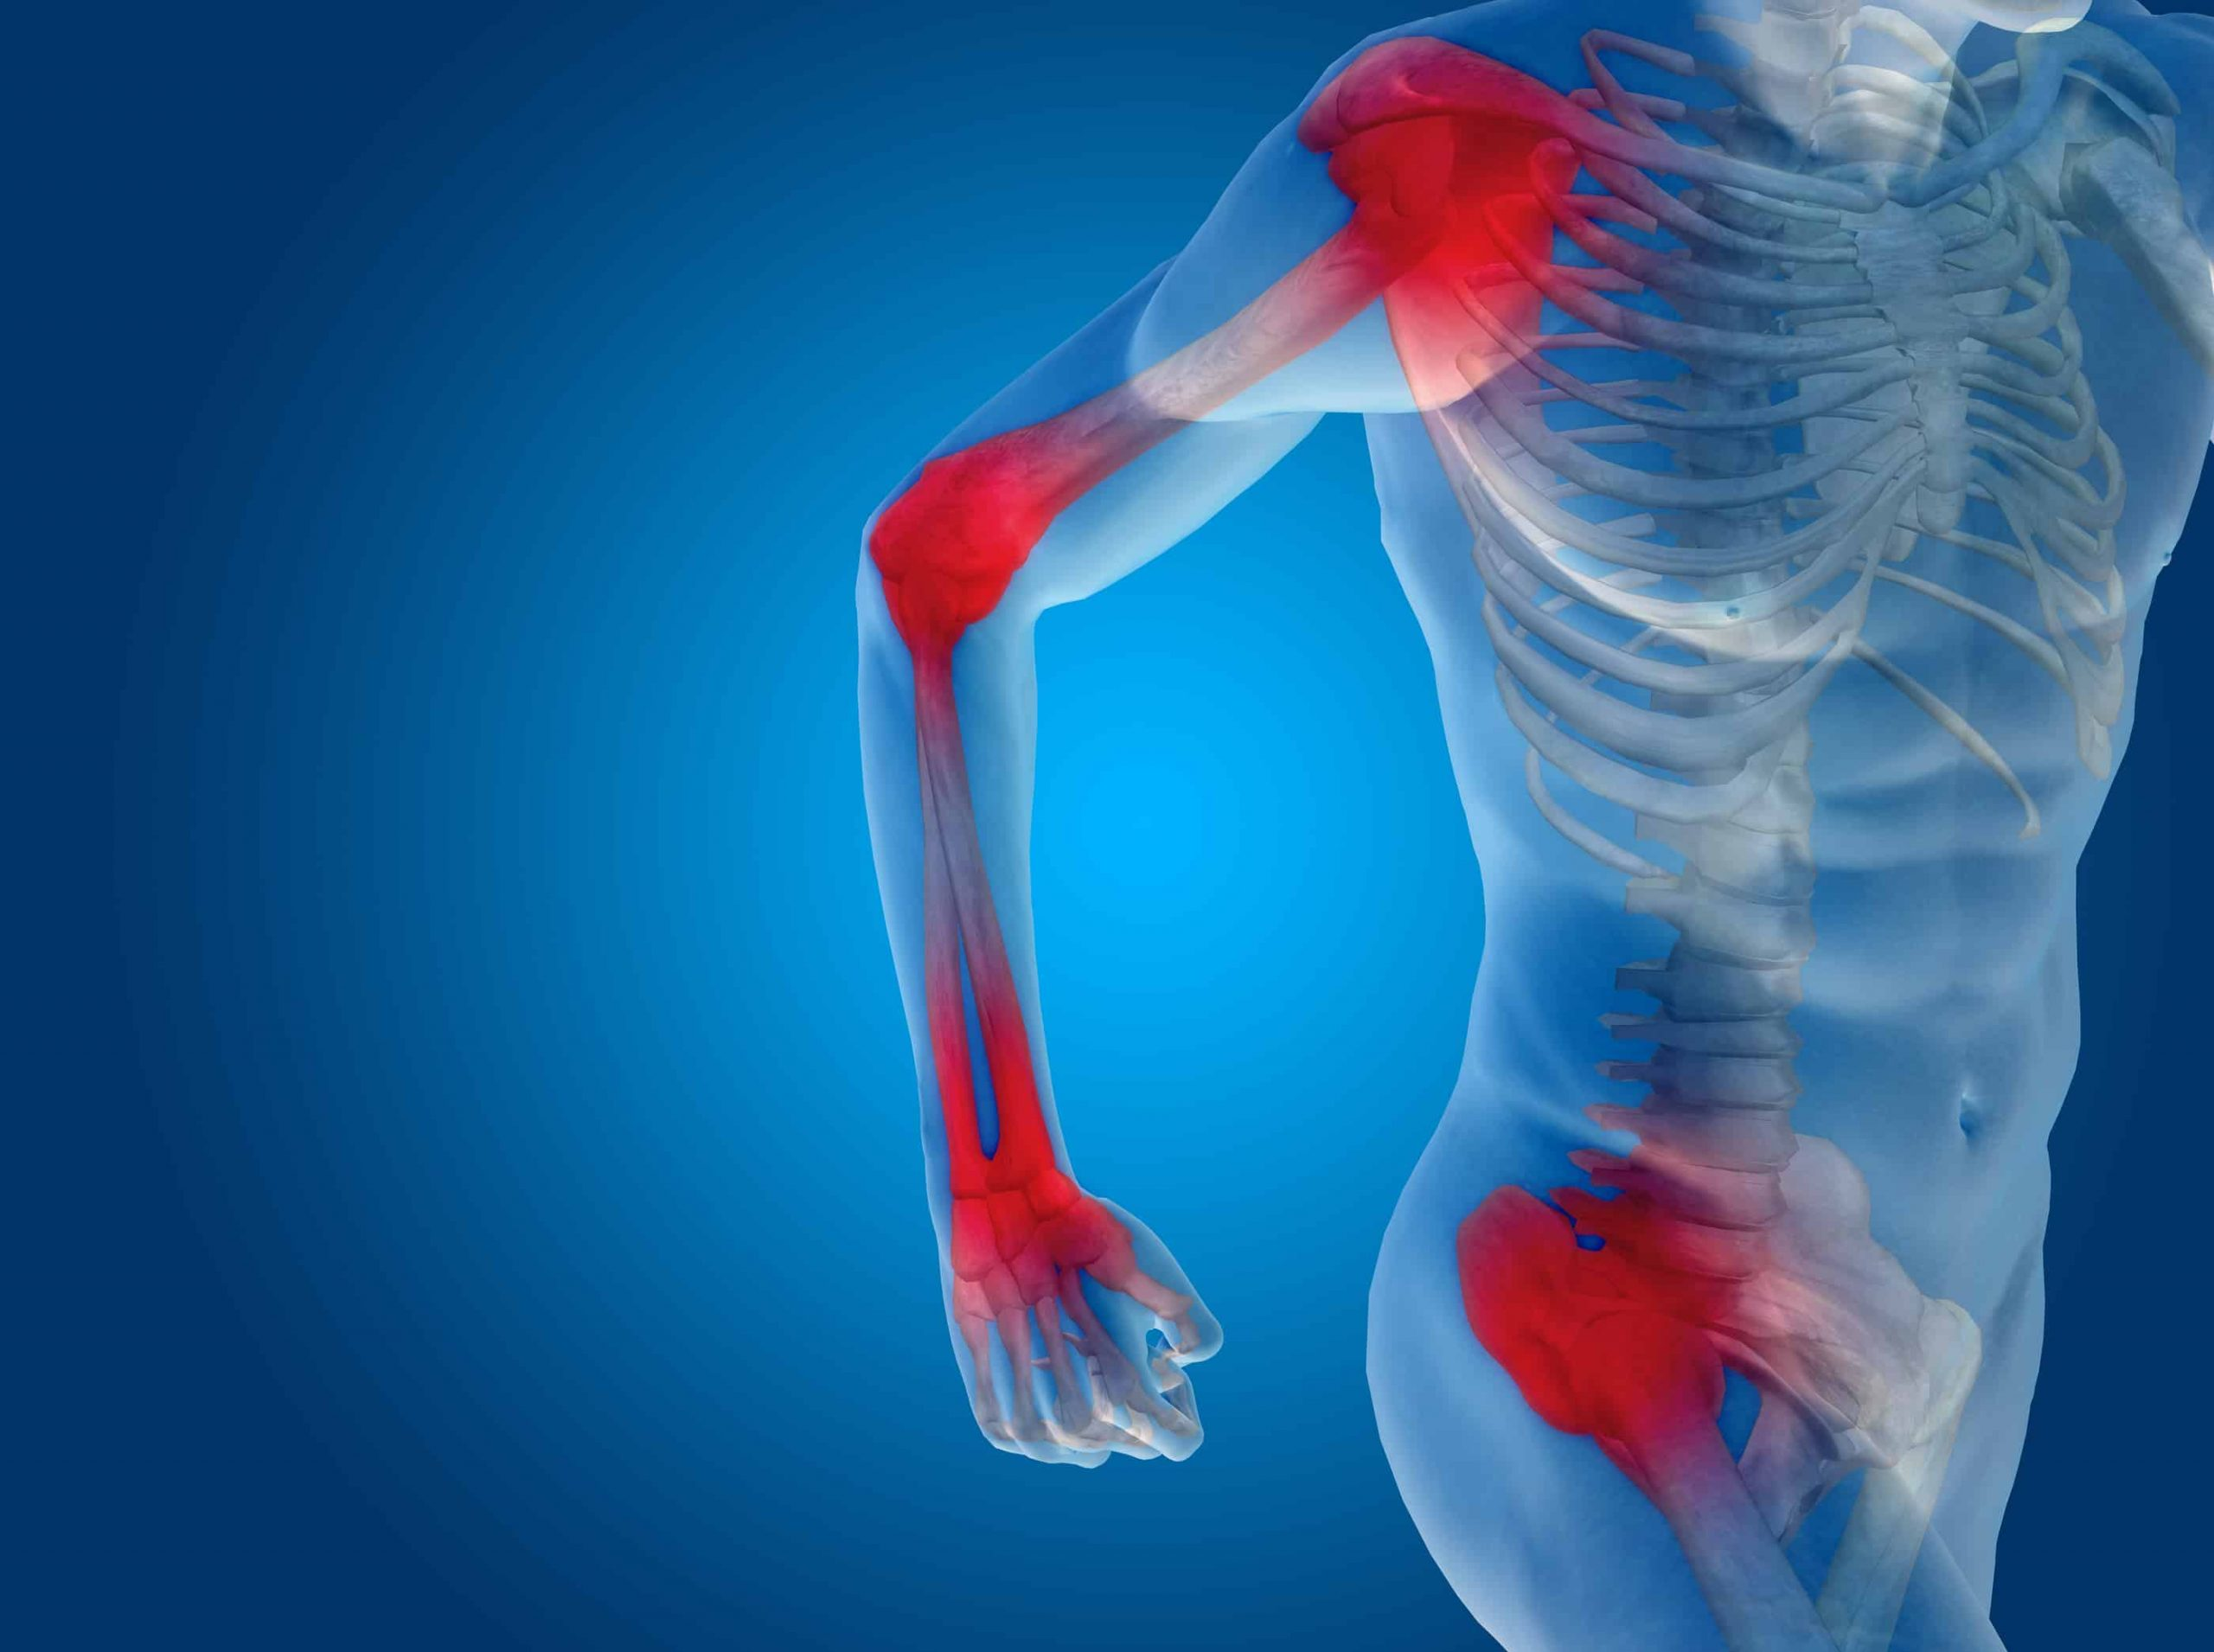 How To Get Rid Of Joint And Muscle Pain For Good? Follow These Few Steps And Bid Goodbye To Your Pain